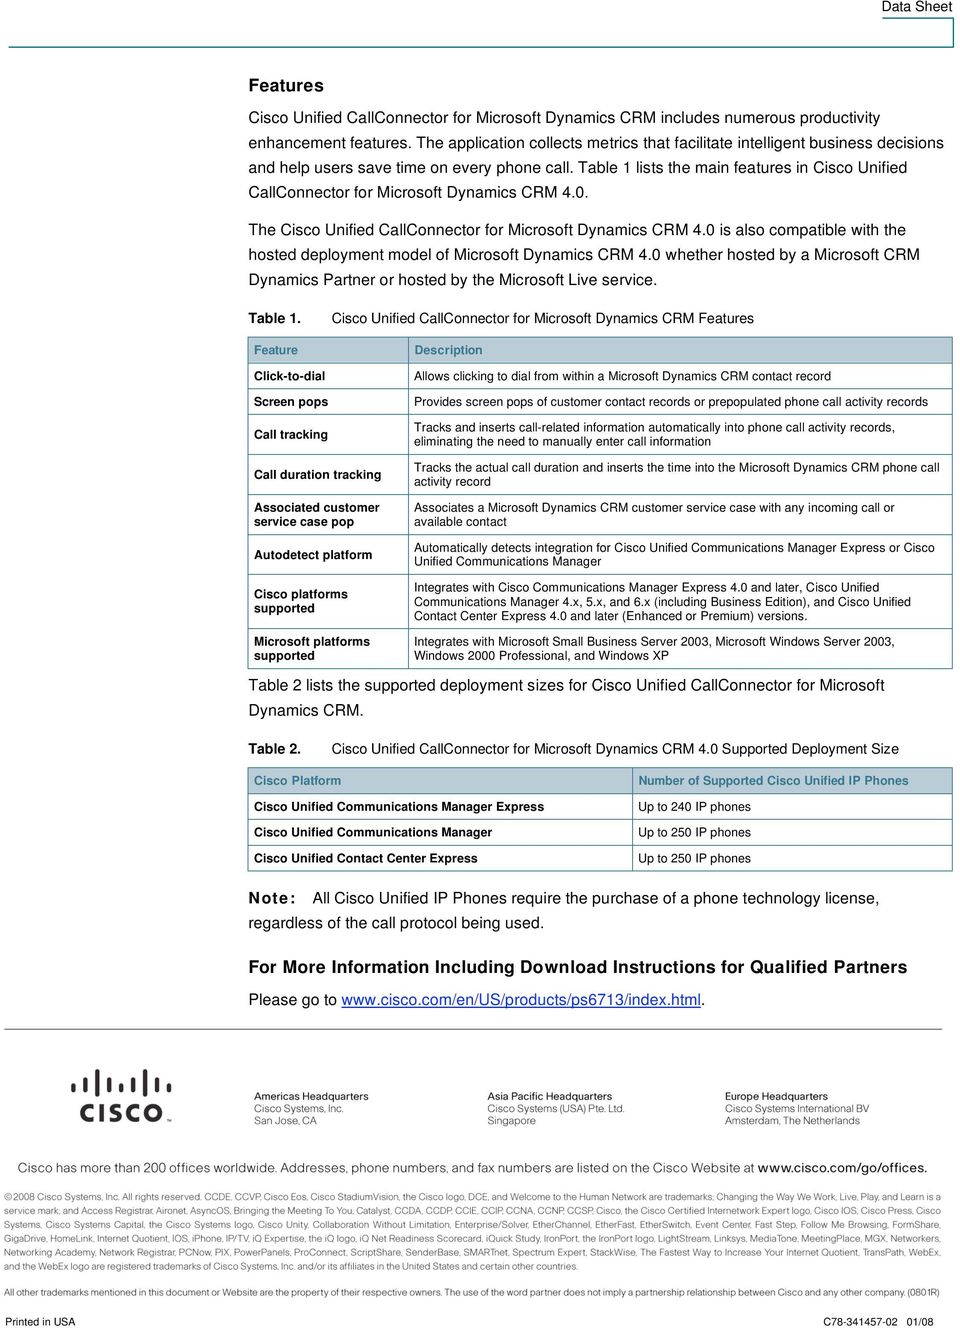 Table 1 lists the main features in Cisco Unified CallConnector for Microsoft Dynamics CRM 4.0. The Cisco Unified CallConnector for Microsoft Dynamics CRM 4.